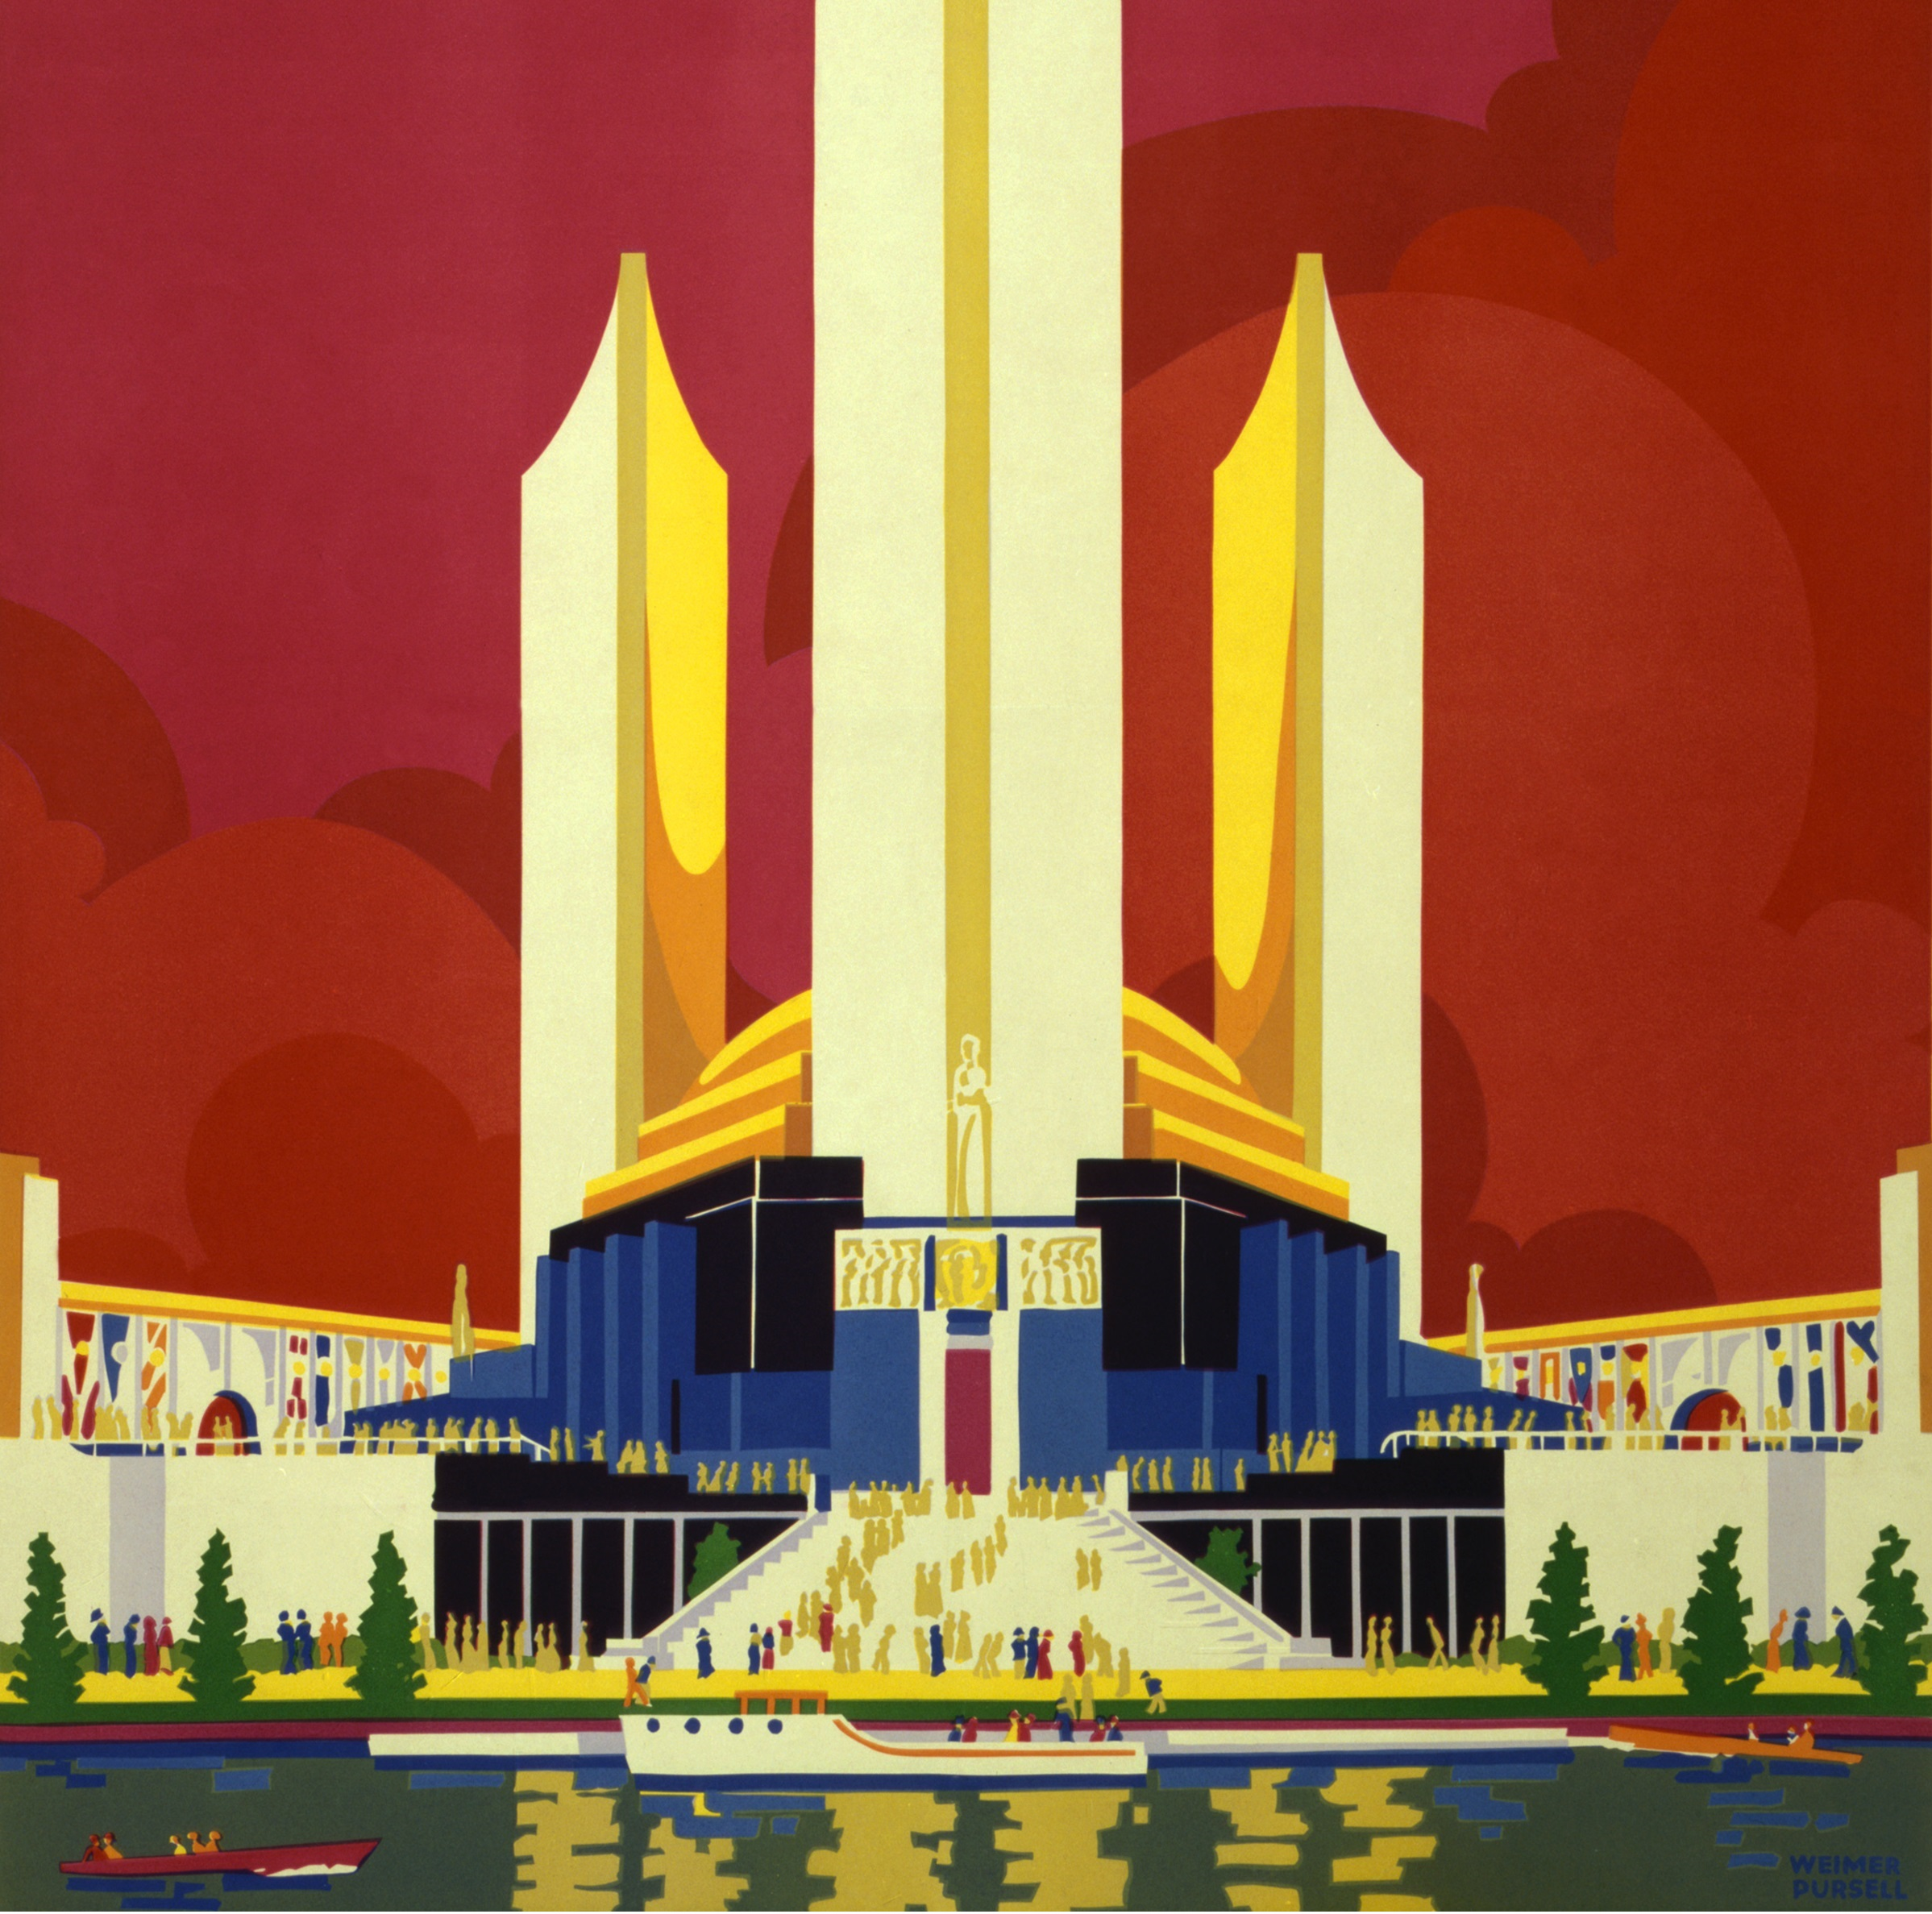 Chicago_world_s_fair__a_century_of_progress__expo_poster__1933__2.jpg